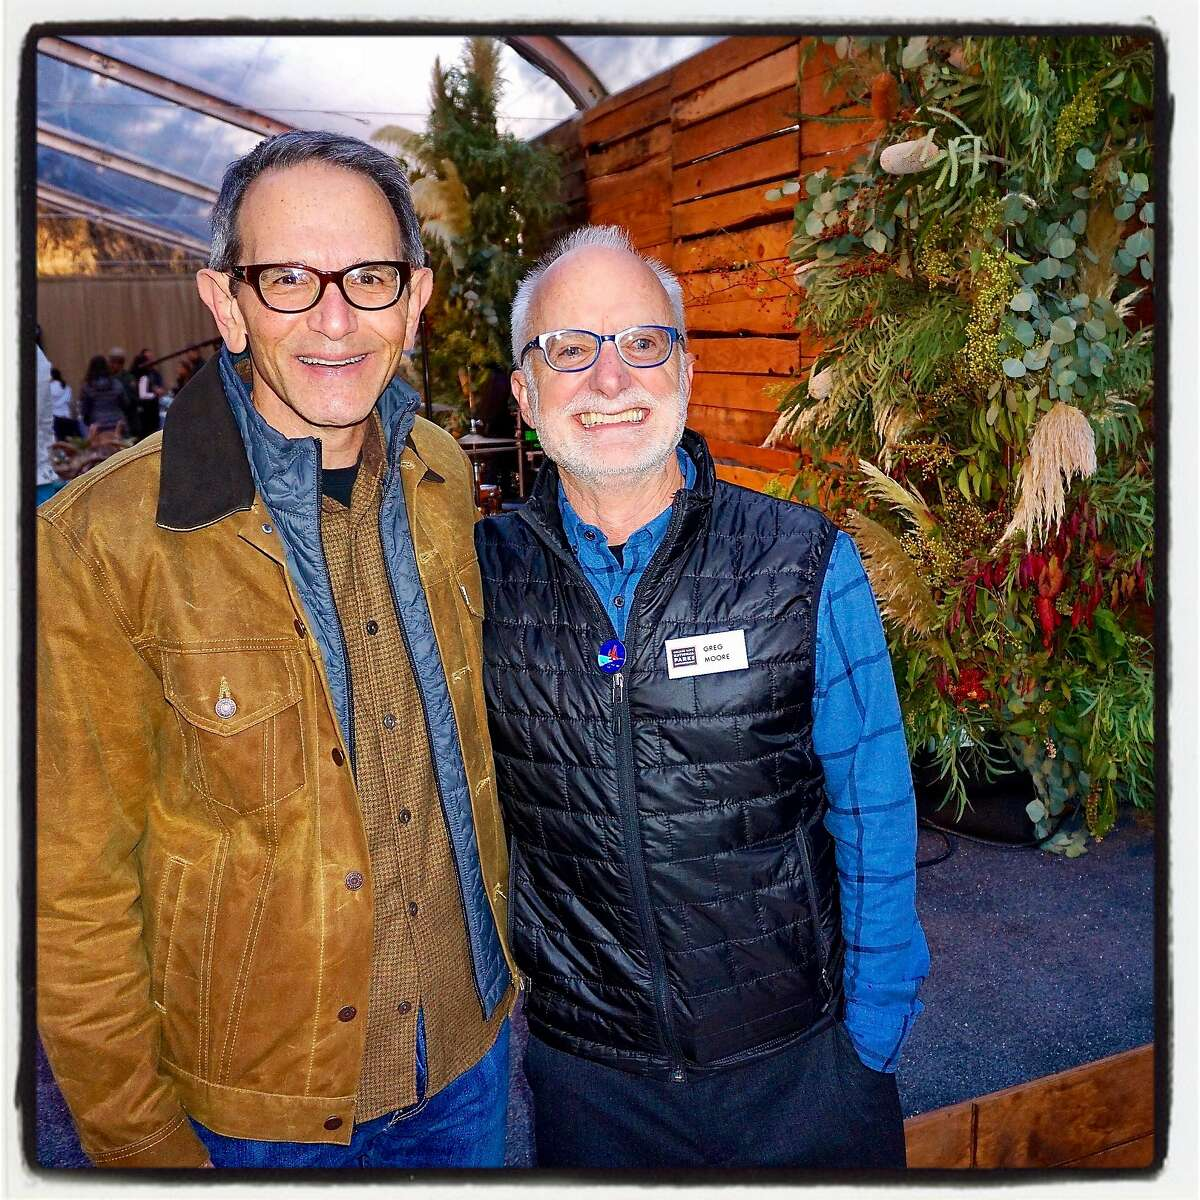 Haas Foundation President Ira Hirschfield (left) with GGNPC Director Greg Moore at the Trails Forever dinner. Sept 2016.